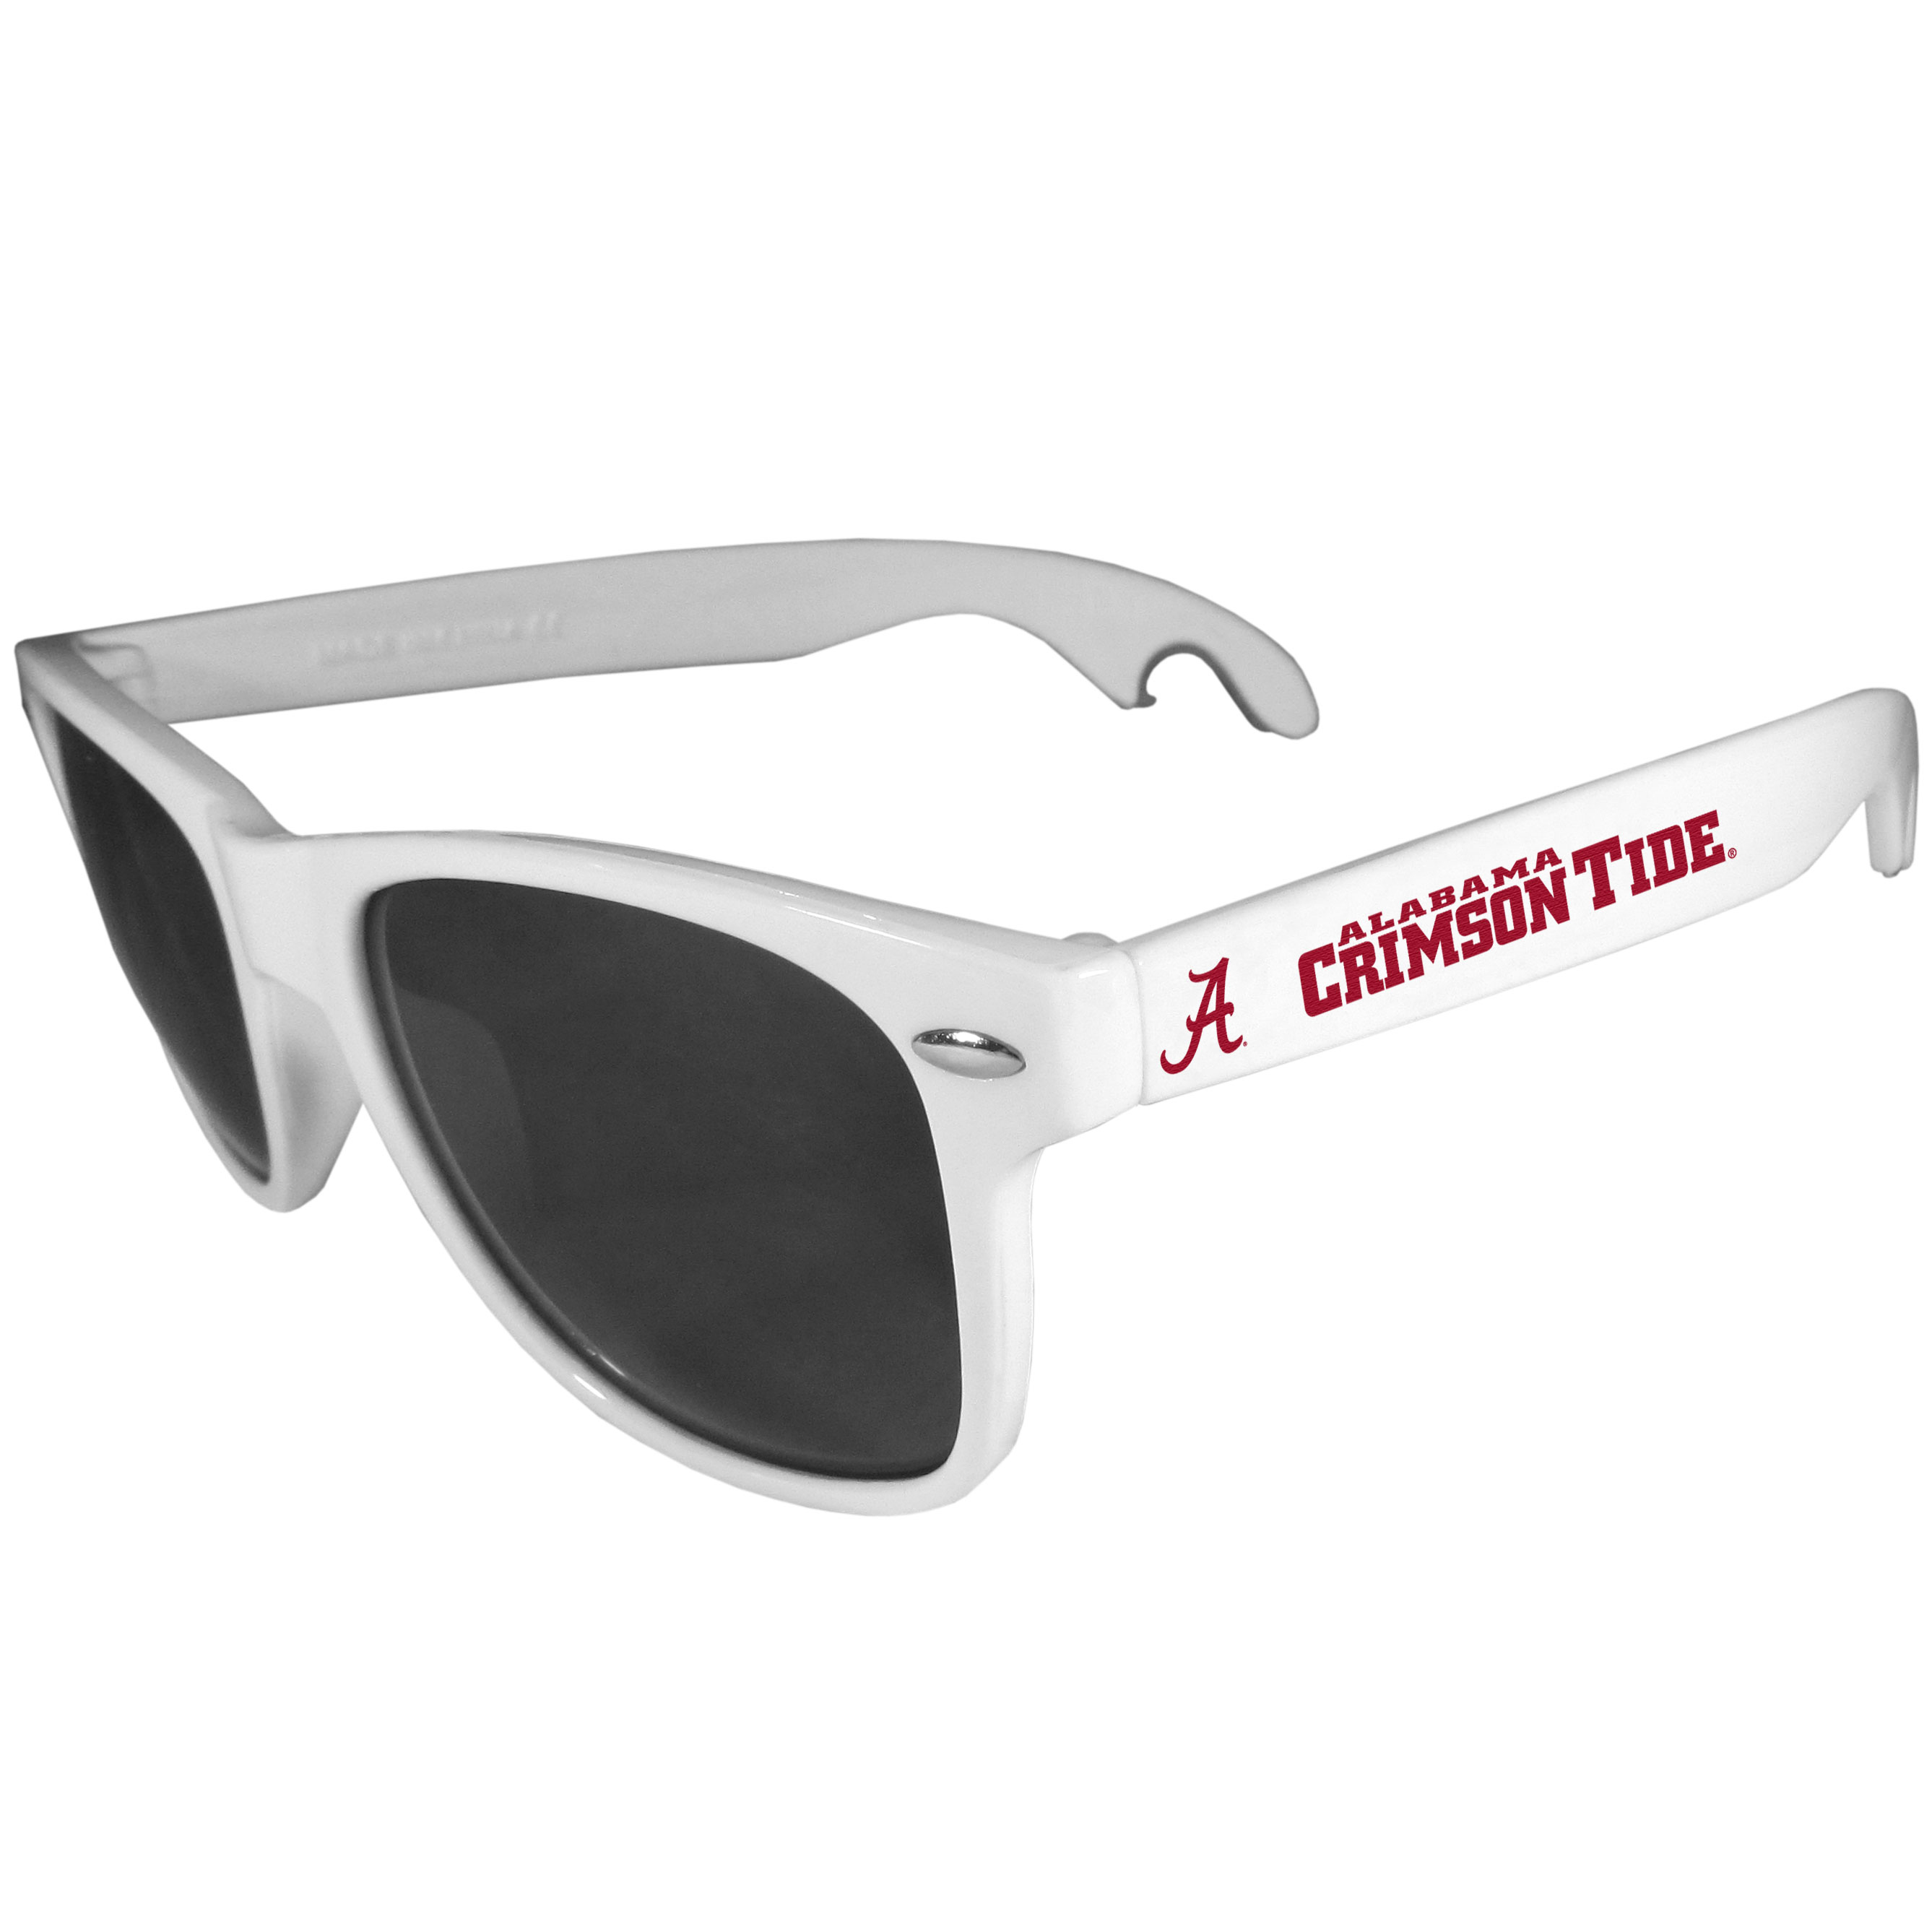 Alabama Crimson Tide Beachfarer Bottle Opener Sunglasses, White - Seriously, these sunglasses open bottles! Keep the party going with these amazing Alabama Crimson Tide bottle opener sunglasses. The stylish retro frames feature team designs on the arms and functional bottle openers on the end of the arms. Whether you are at the beach or having a backyard BBQ on game day, these shades will keep your eyes protected with 100% UVA/UVB protection and keep you hydrated with the handy bottle opener arms.